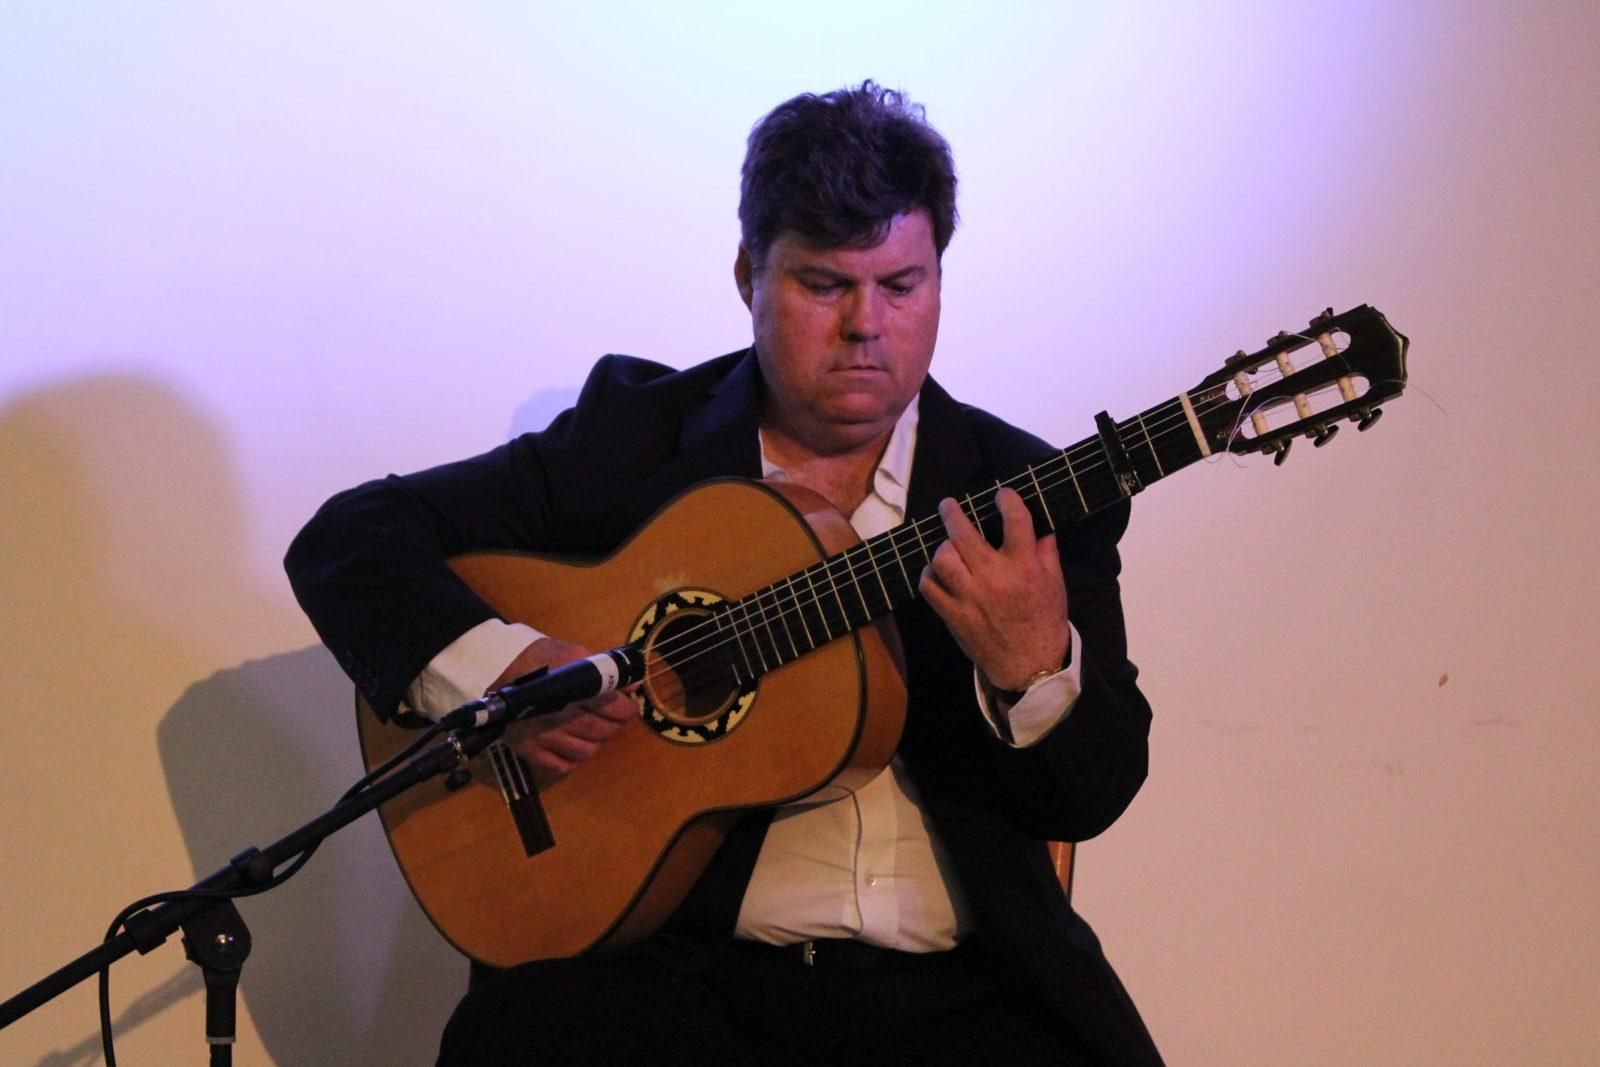 Flamenco Guitarist Concert